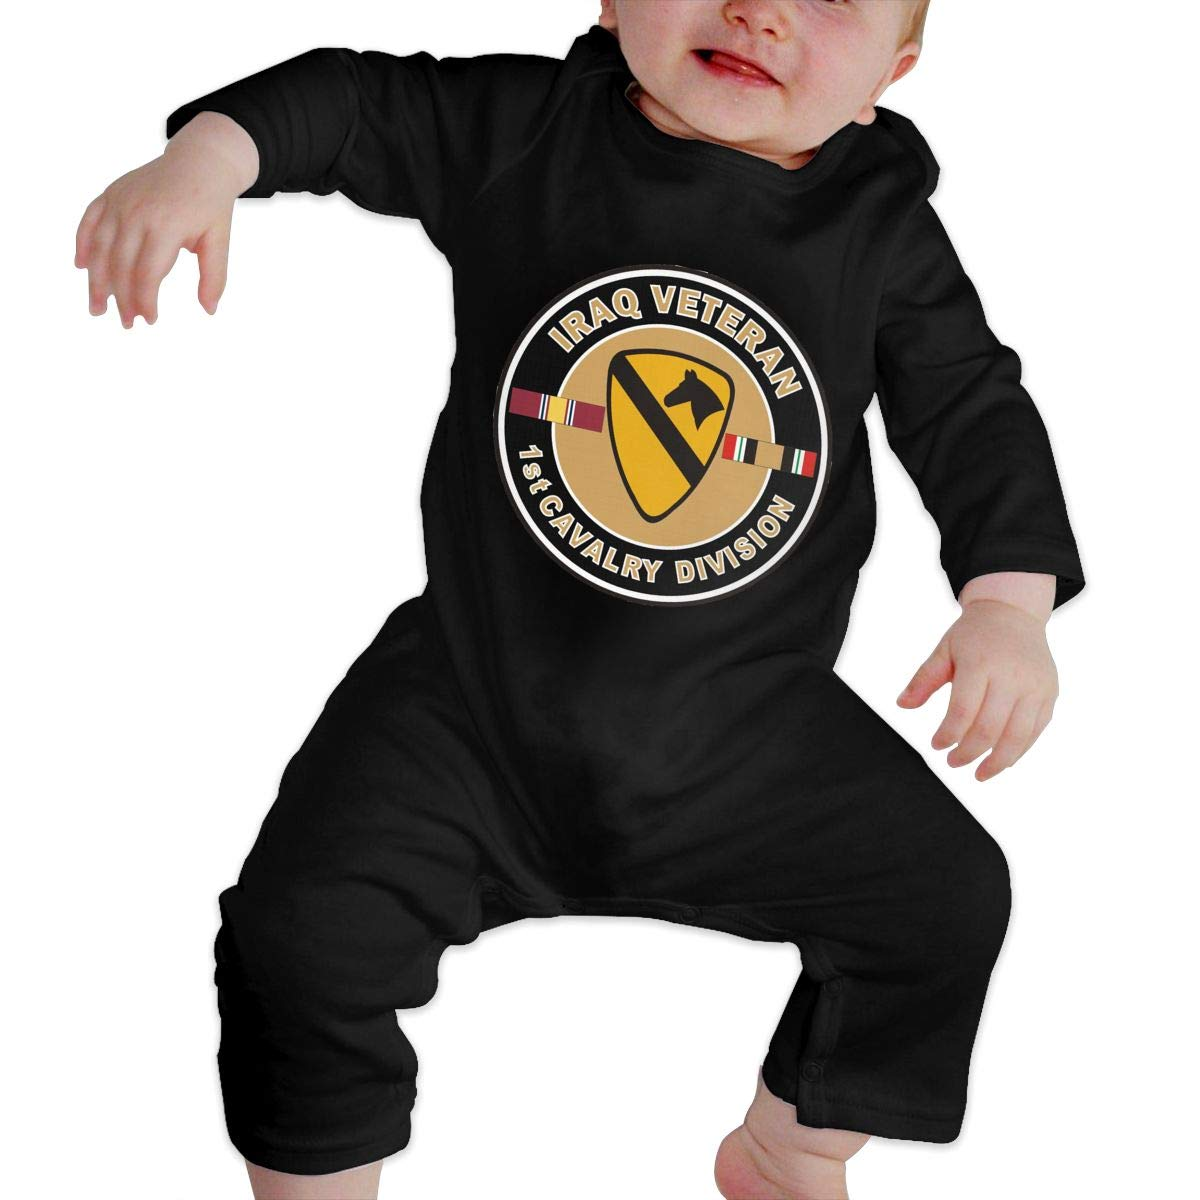 MiNgosRY US Army 1st Cavalry Division Newborn Baby Long Sleeve Bodysuits Rompers Outfits